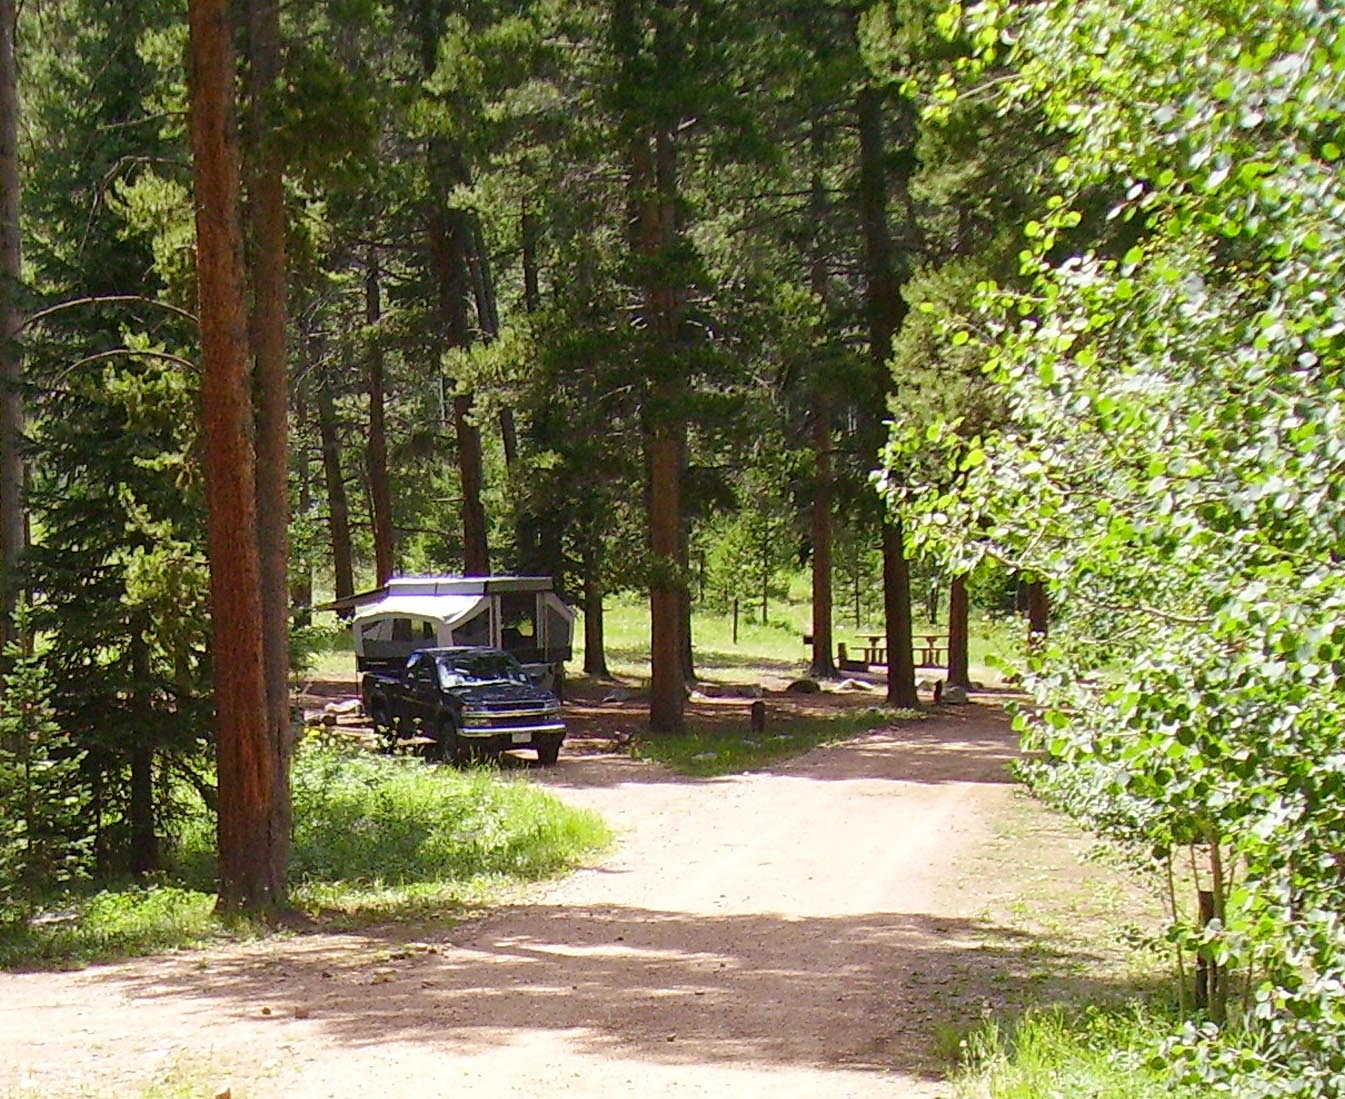 Photo of Lynx Pass campground